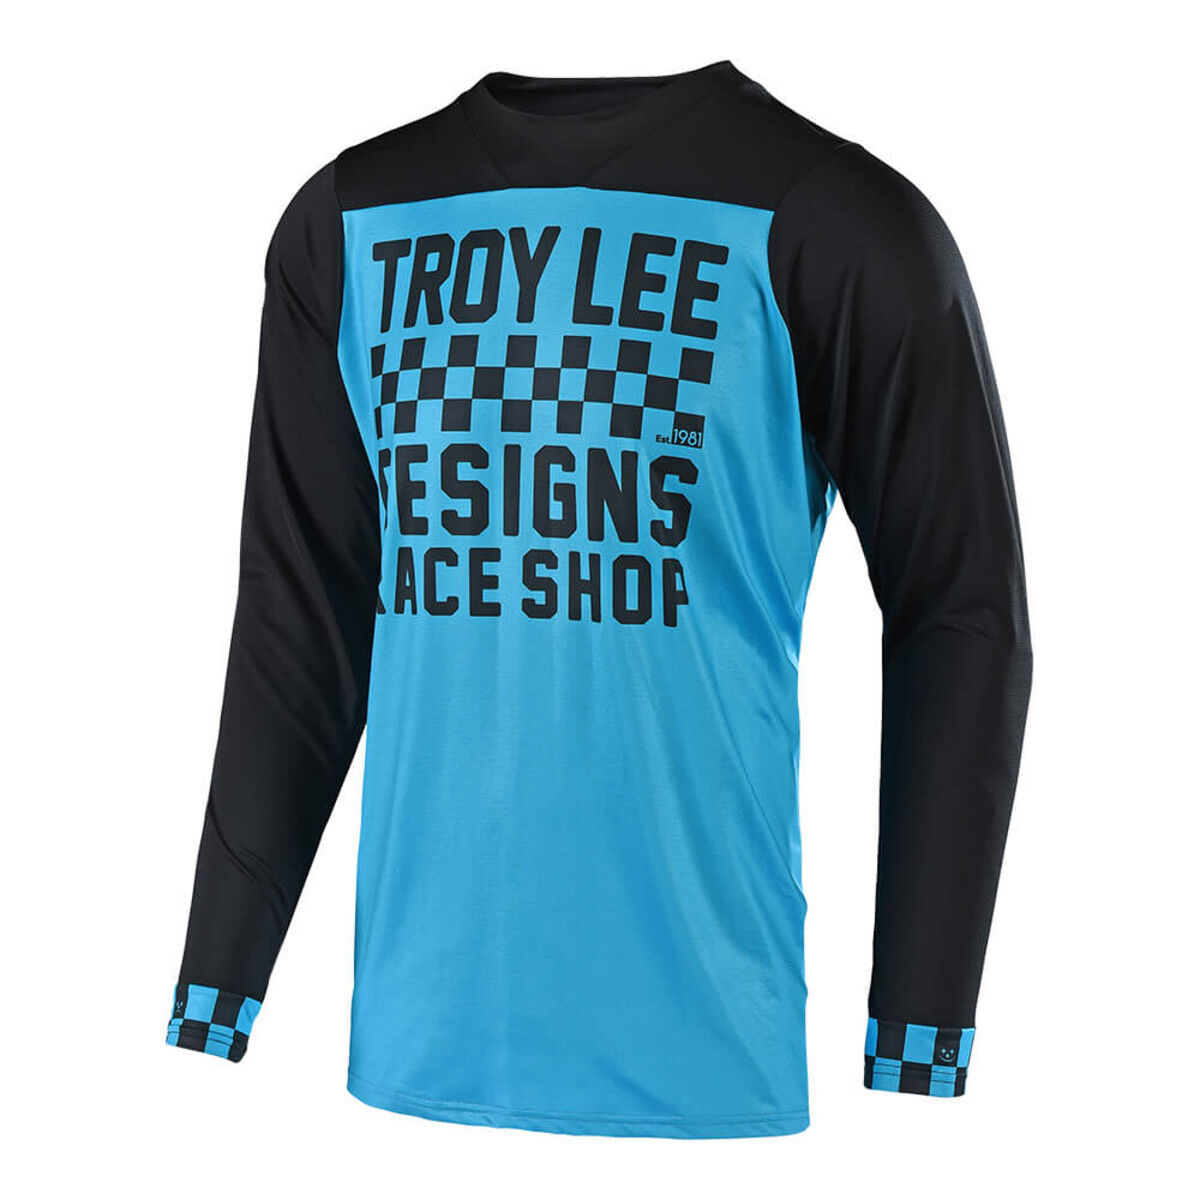 Troy Lee Designs Mountainbike Trikot Skyline L L L / JERSEY; Zielflagge Ocn / a06fee